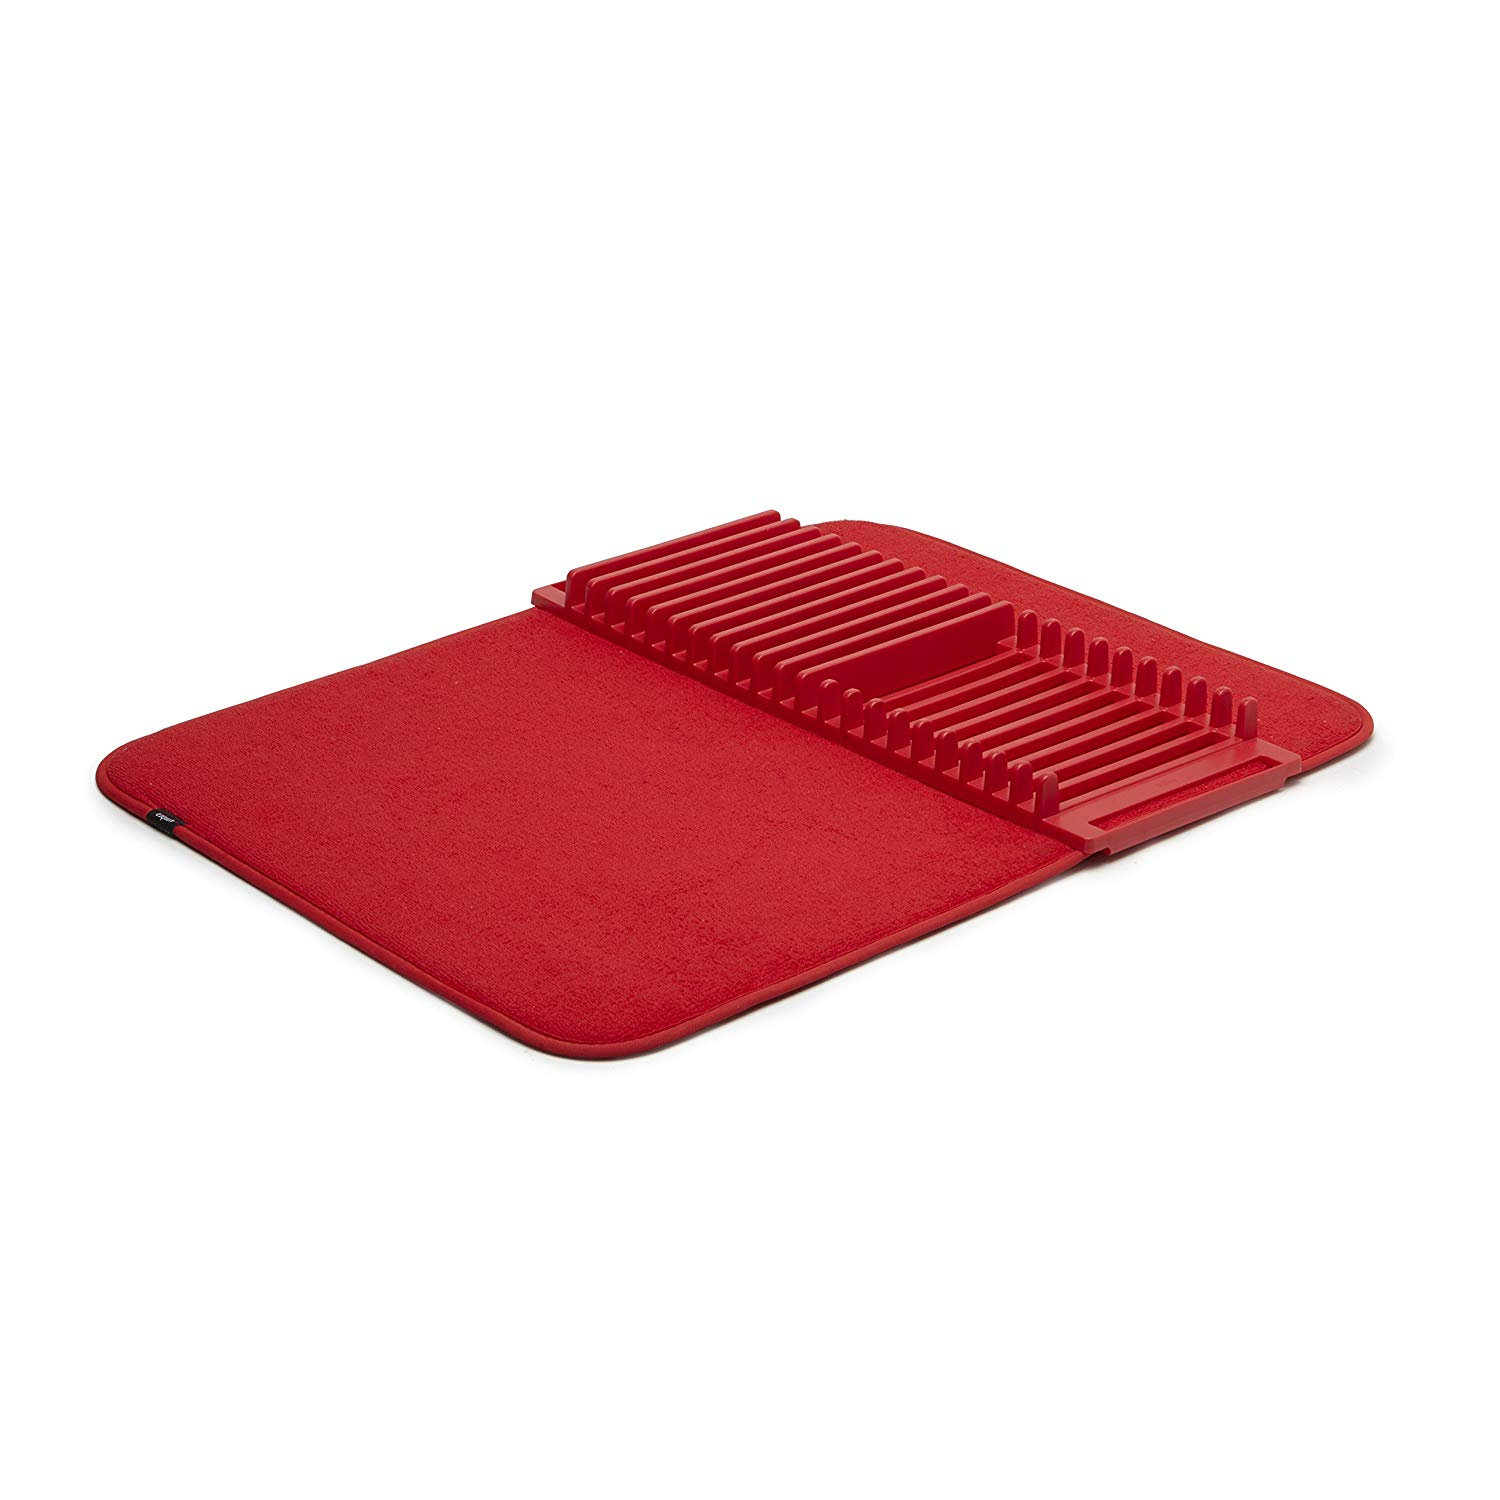 UDRY DRYING MAT RED